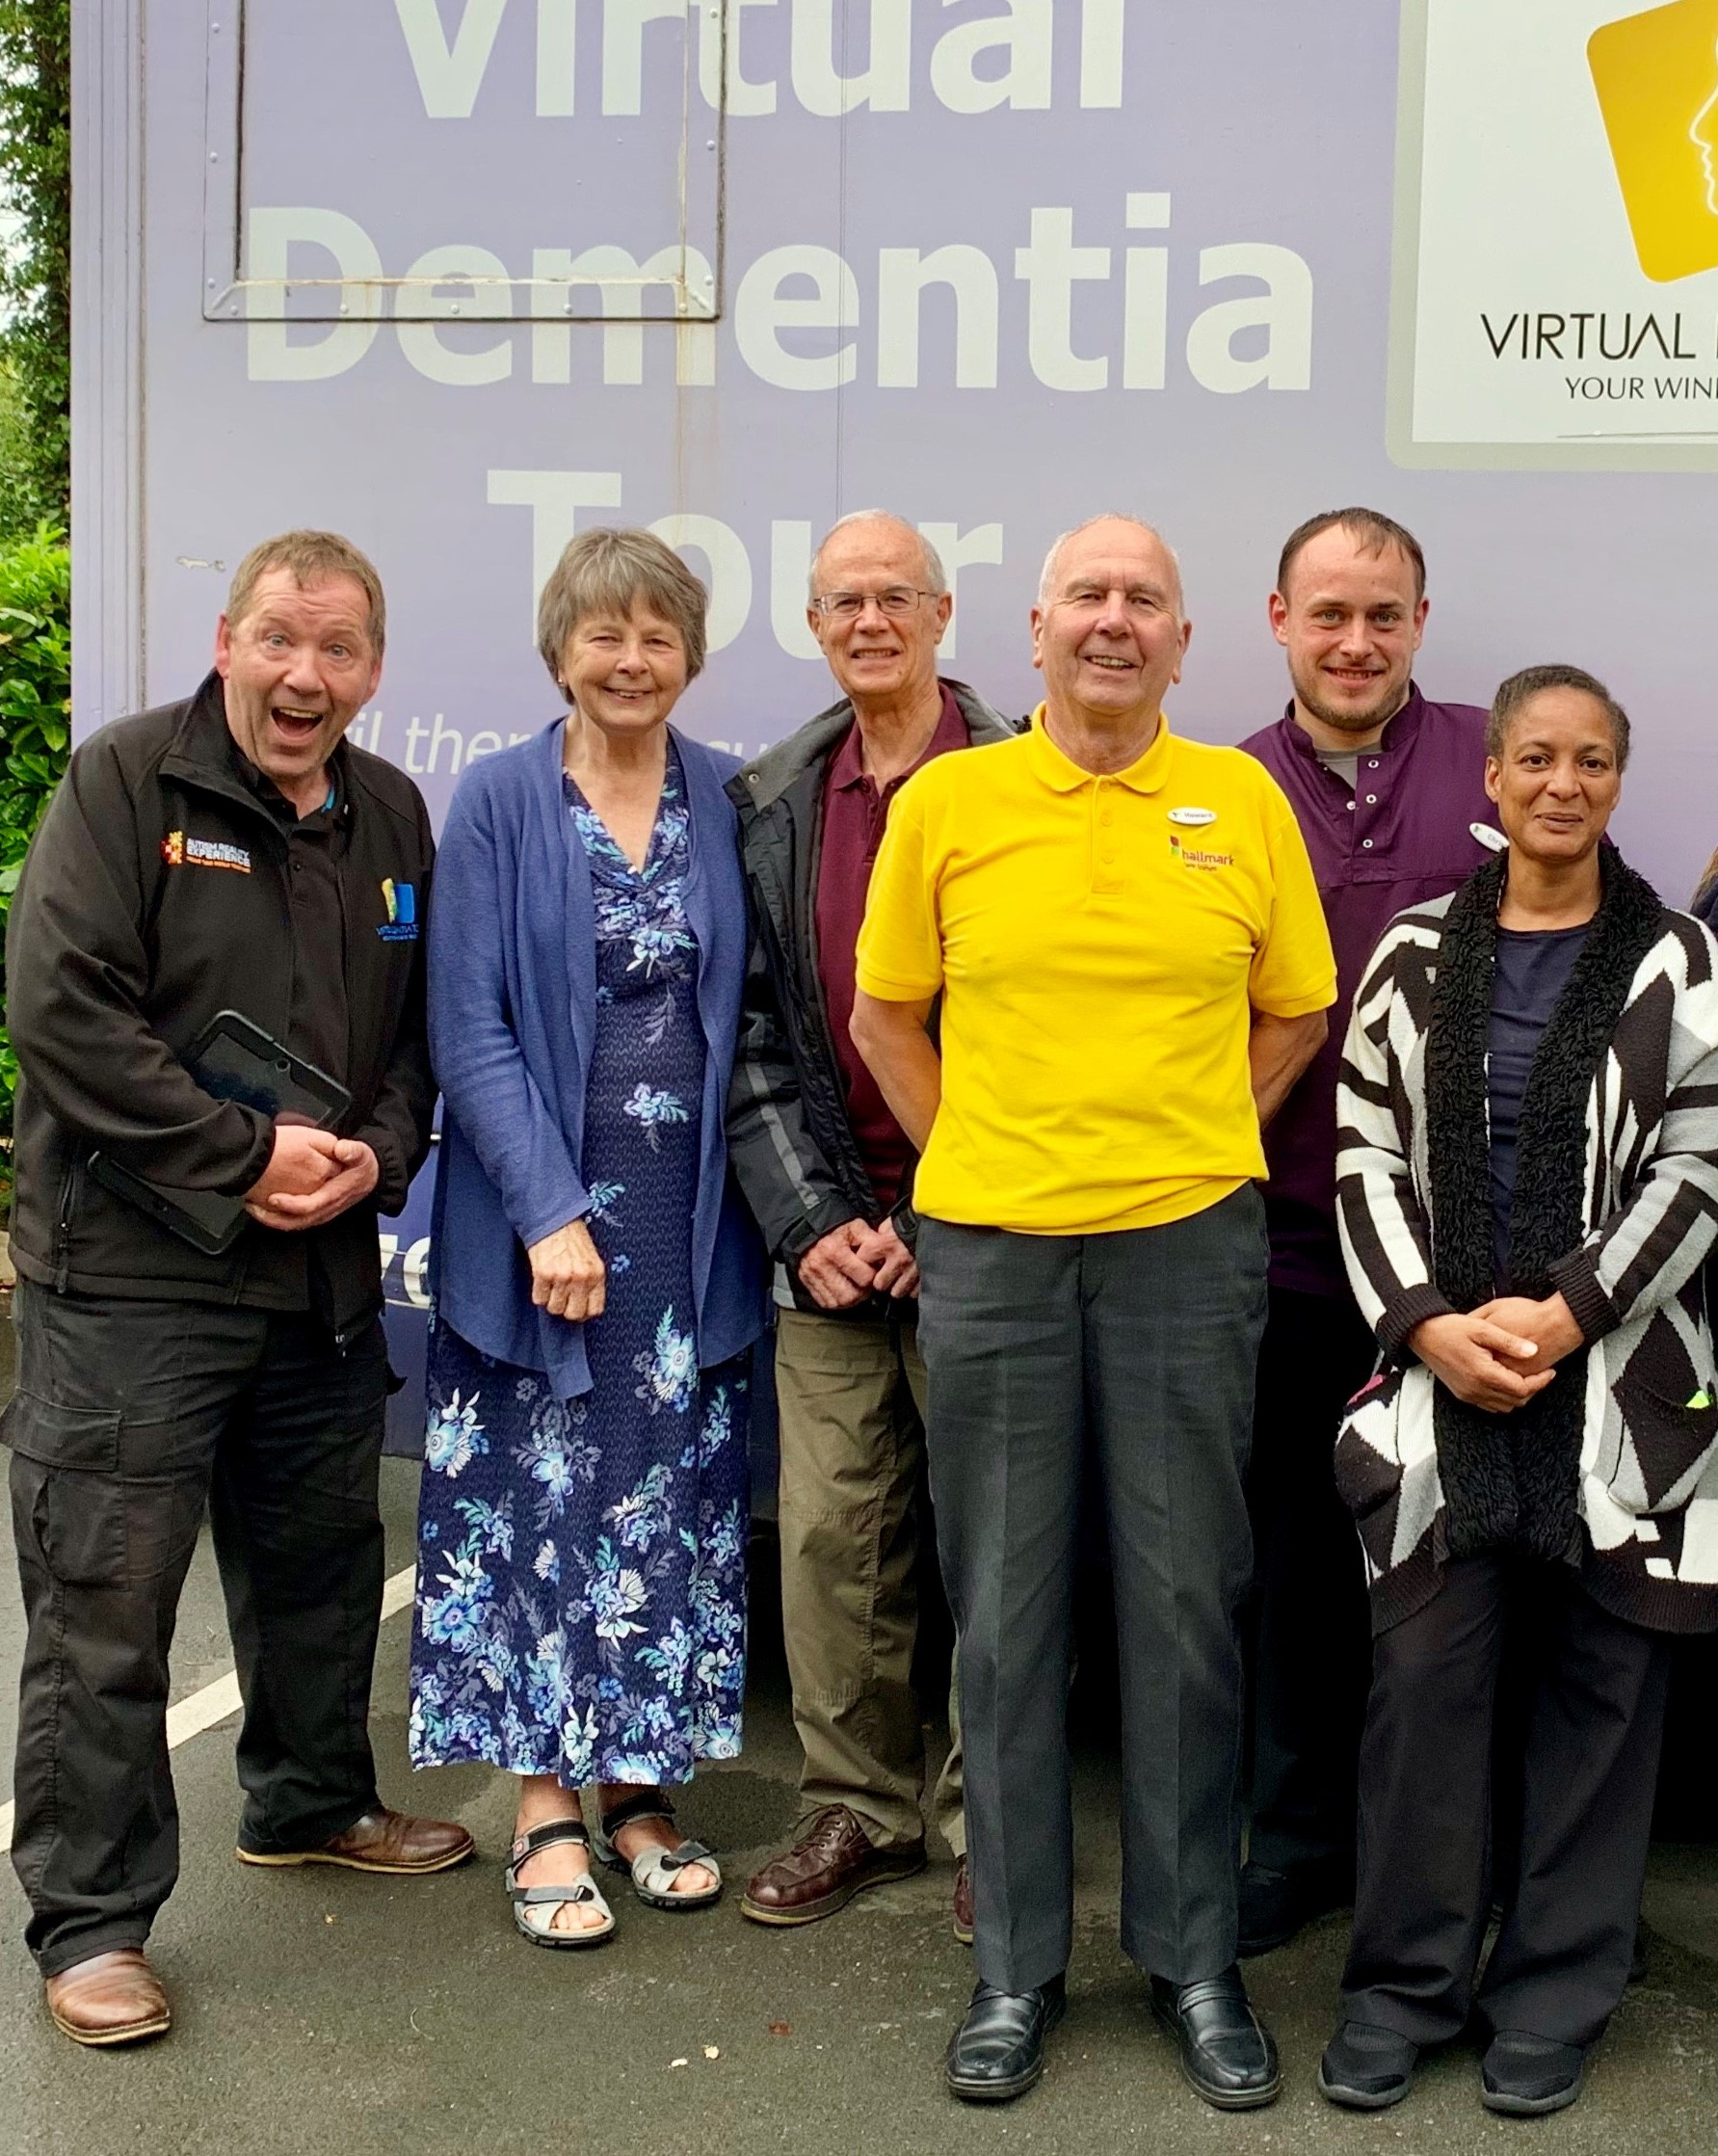 Rugby care home hosts Virtual Dementia Tour